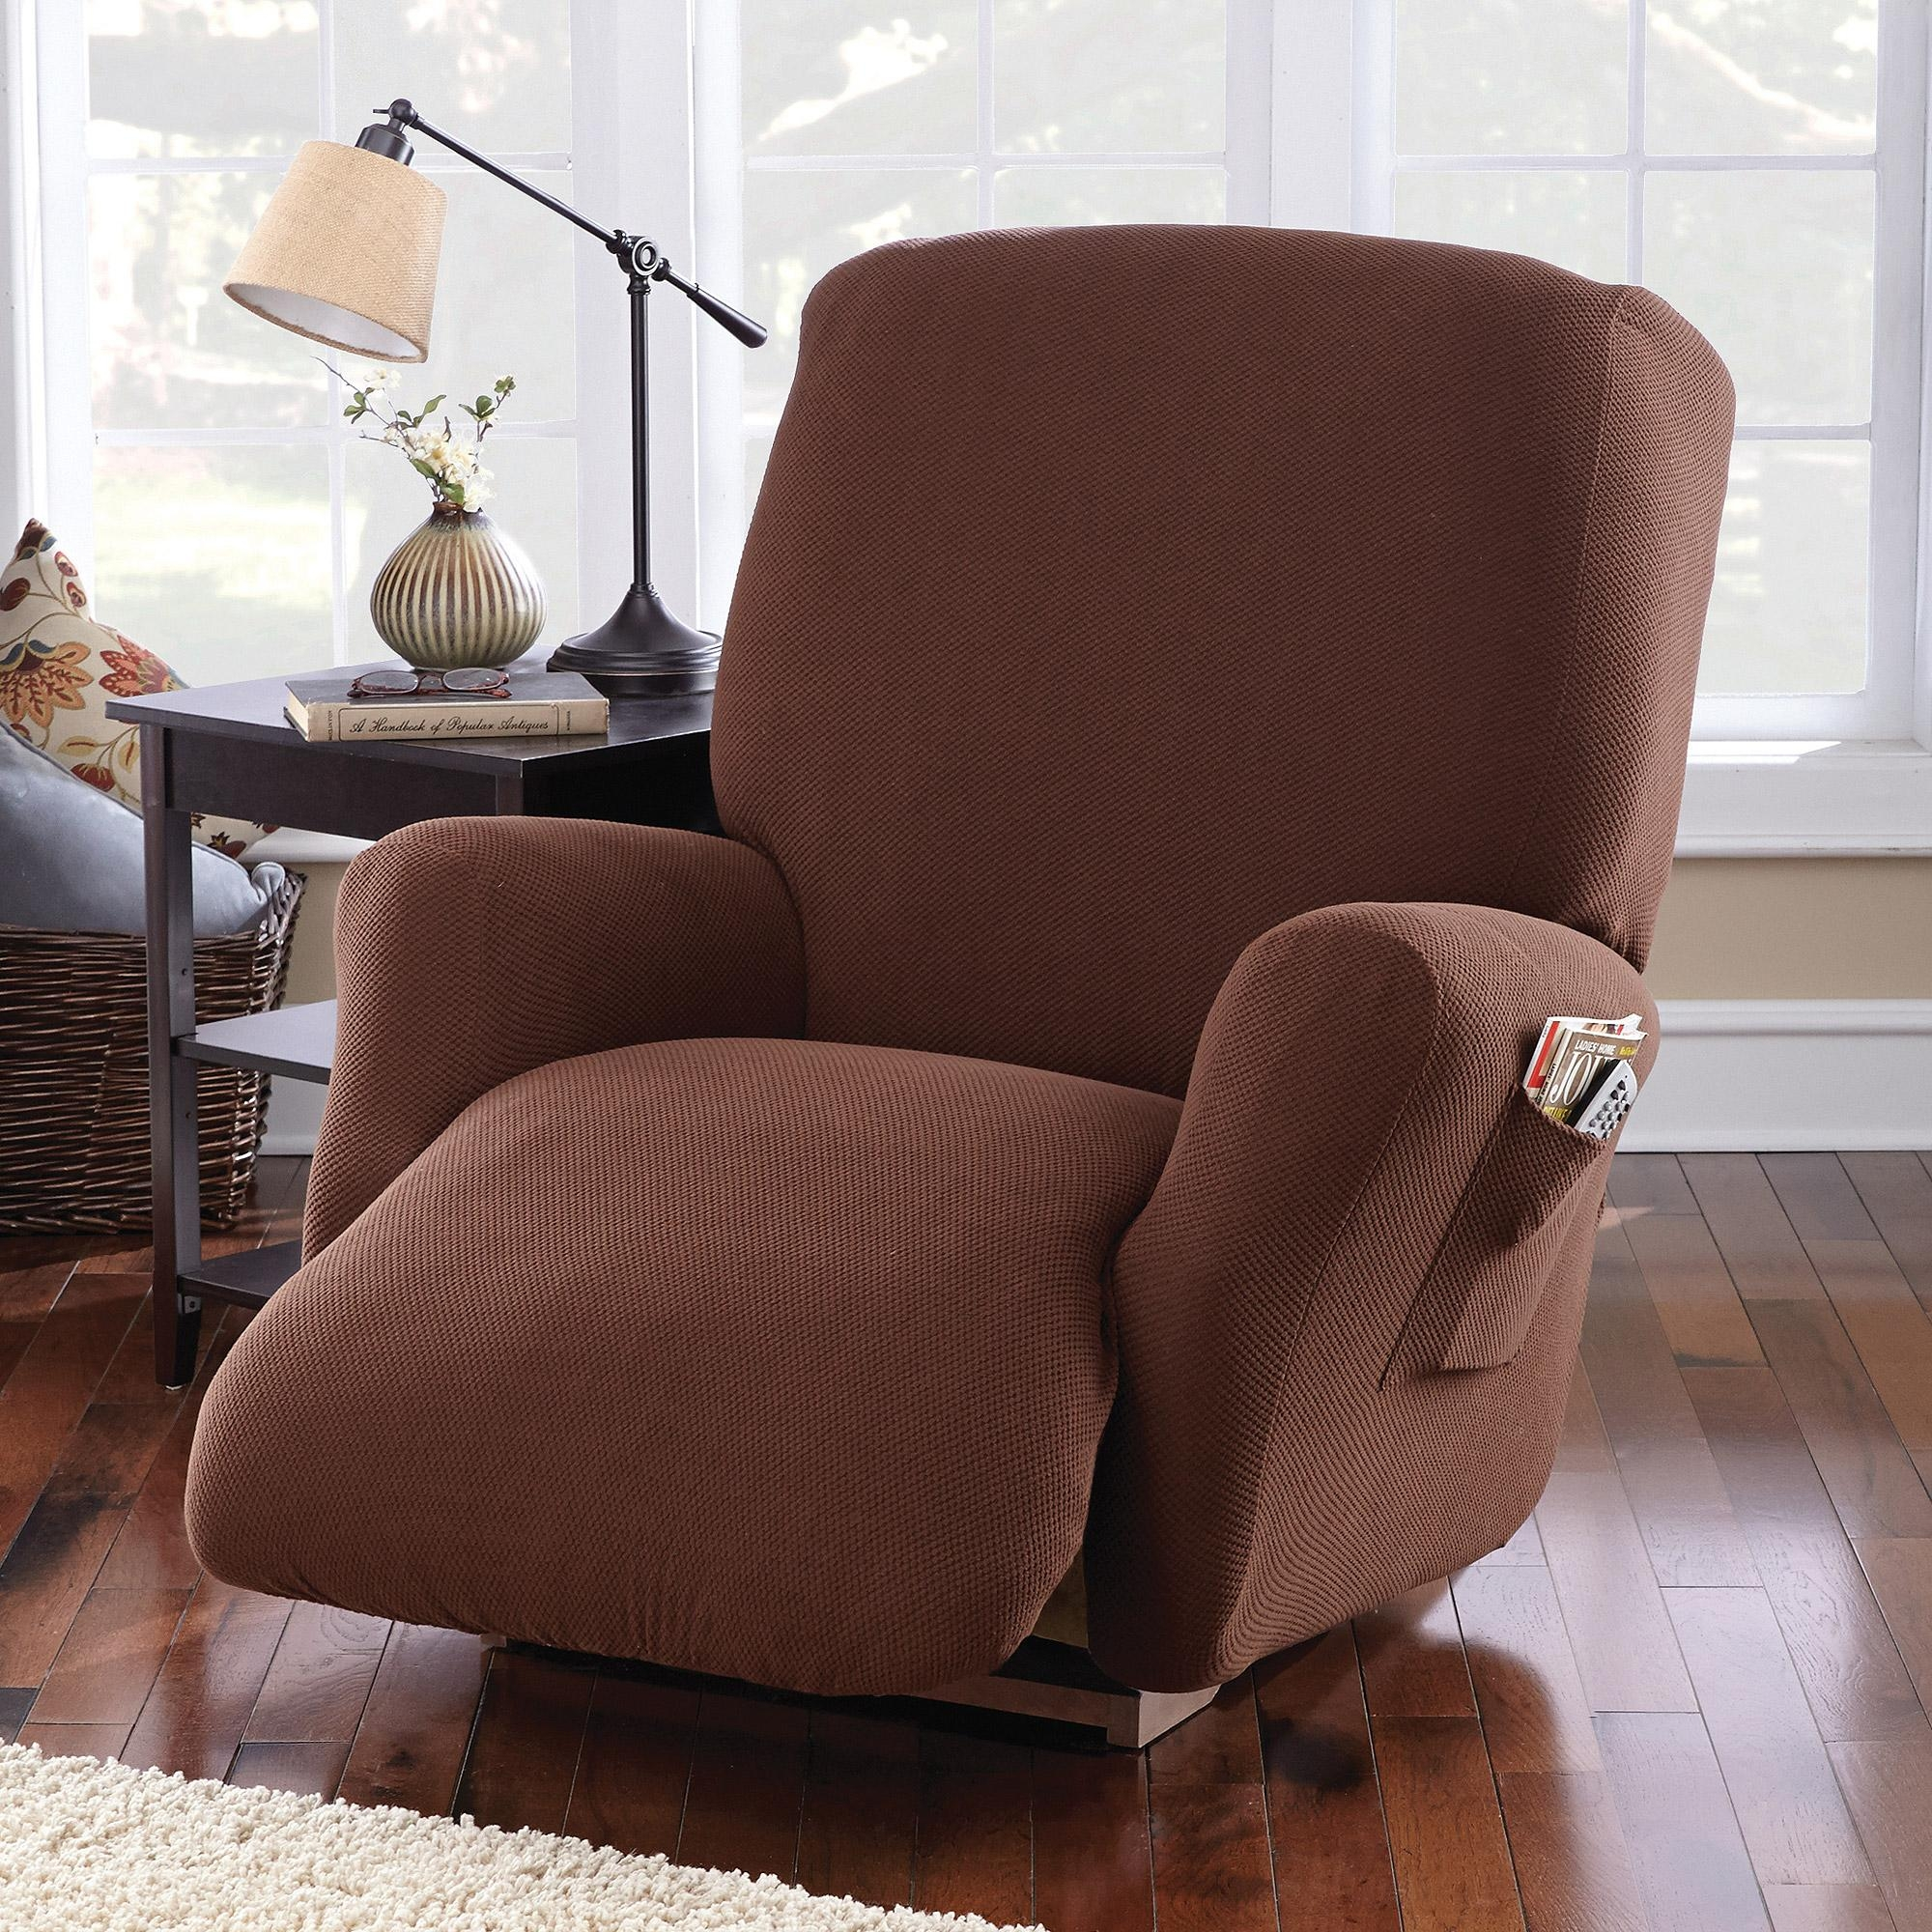 Furniture & Rug: Chic Recliner Covers For Prettier Recliner Ideas With Regard To Slipcover For Reclining Sofas (Image 4 of 20)